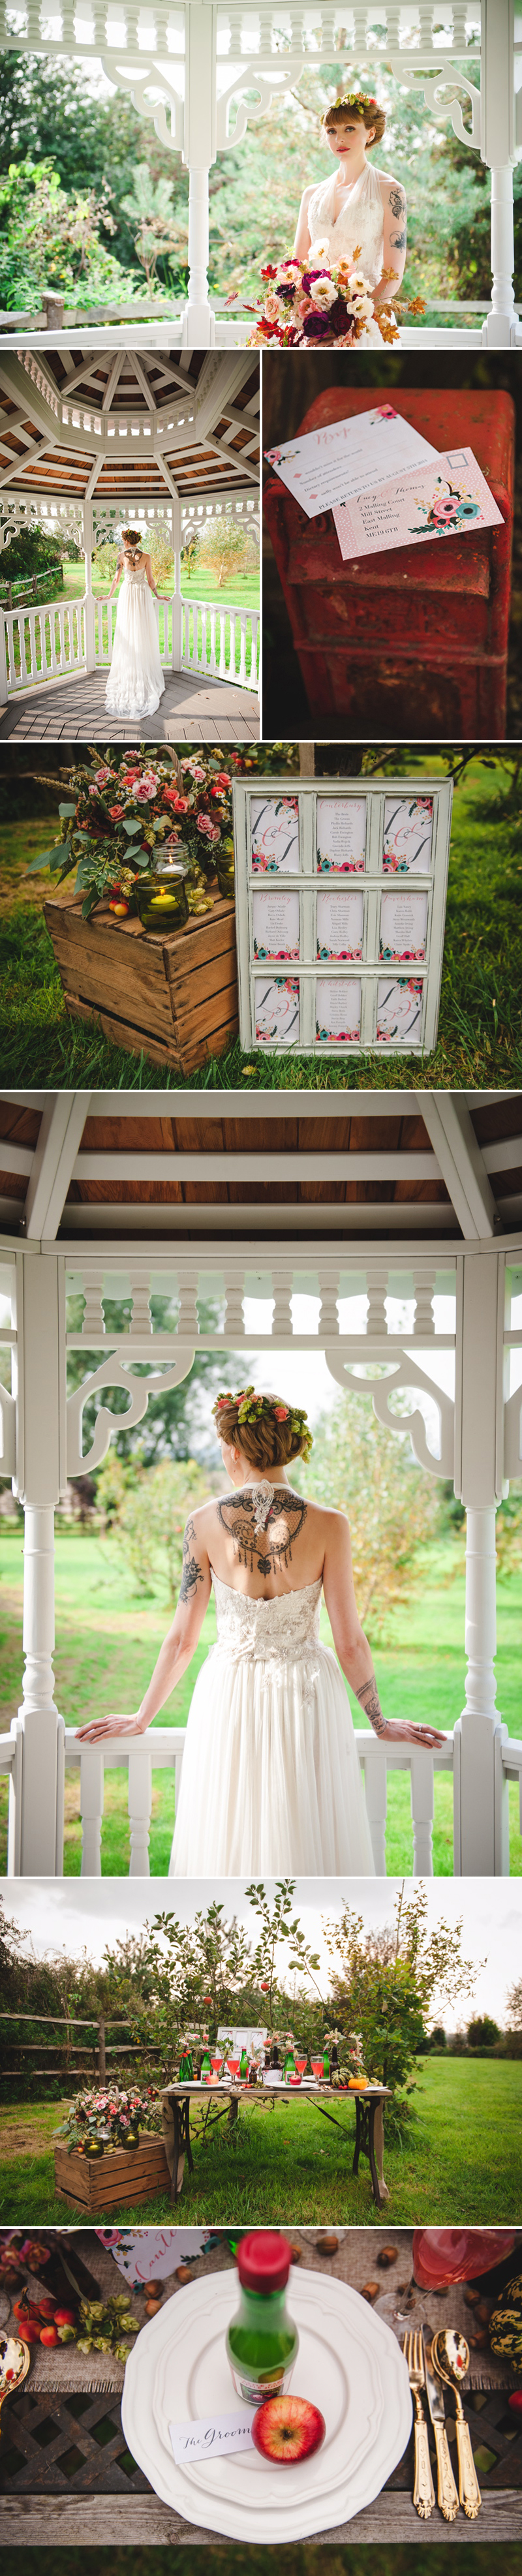 kent-wedding-venue-wedding-inspiration-the-maid-of-kent-heline-bekker-photography-coco-wedding-venues-004